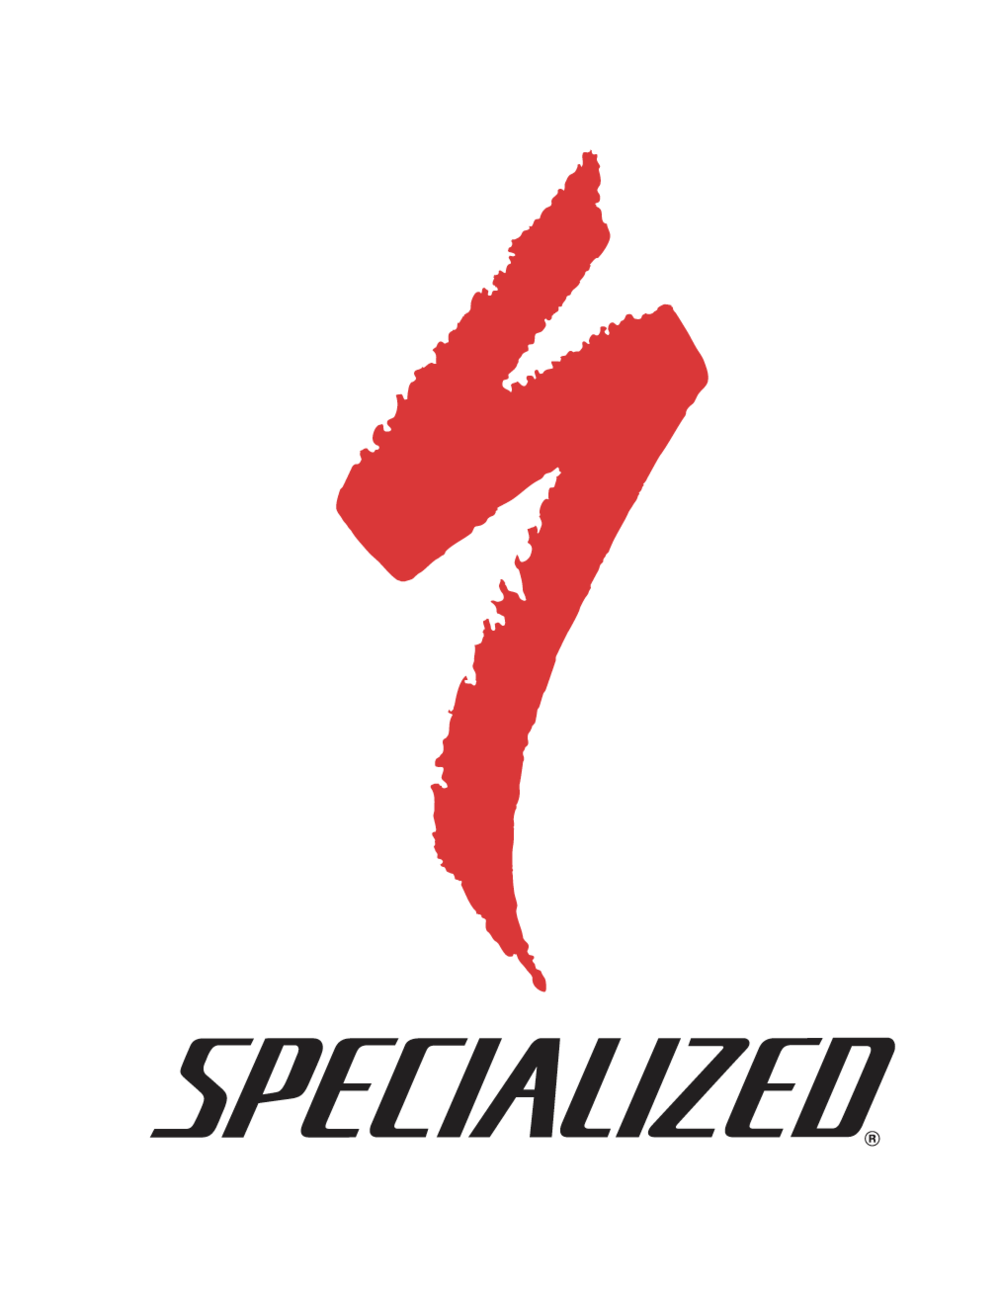 Specialized Logo Vertical.jpg